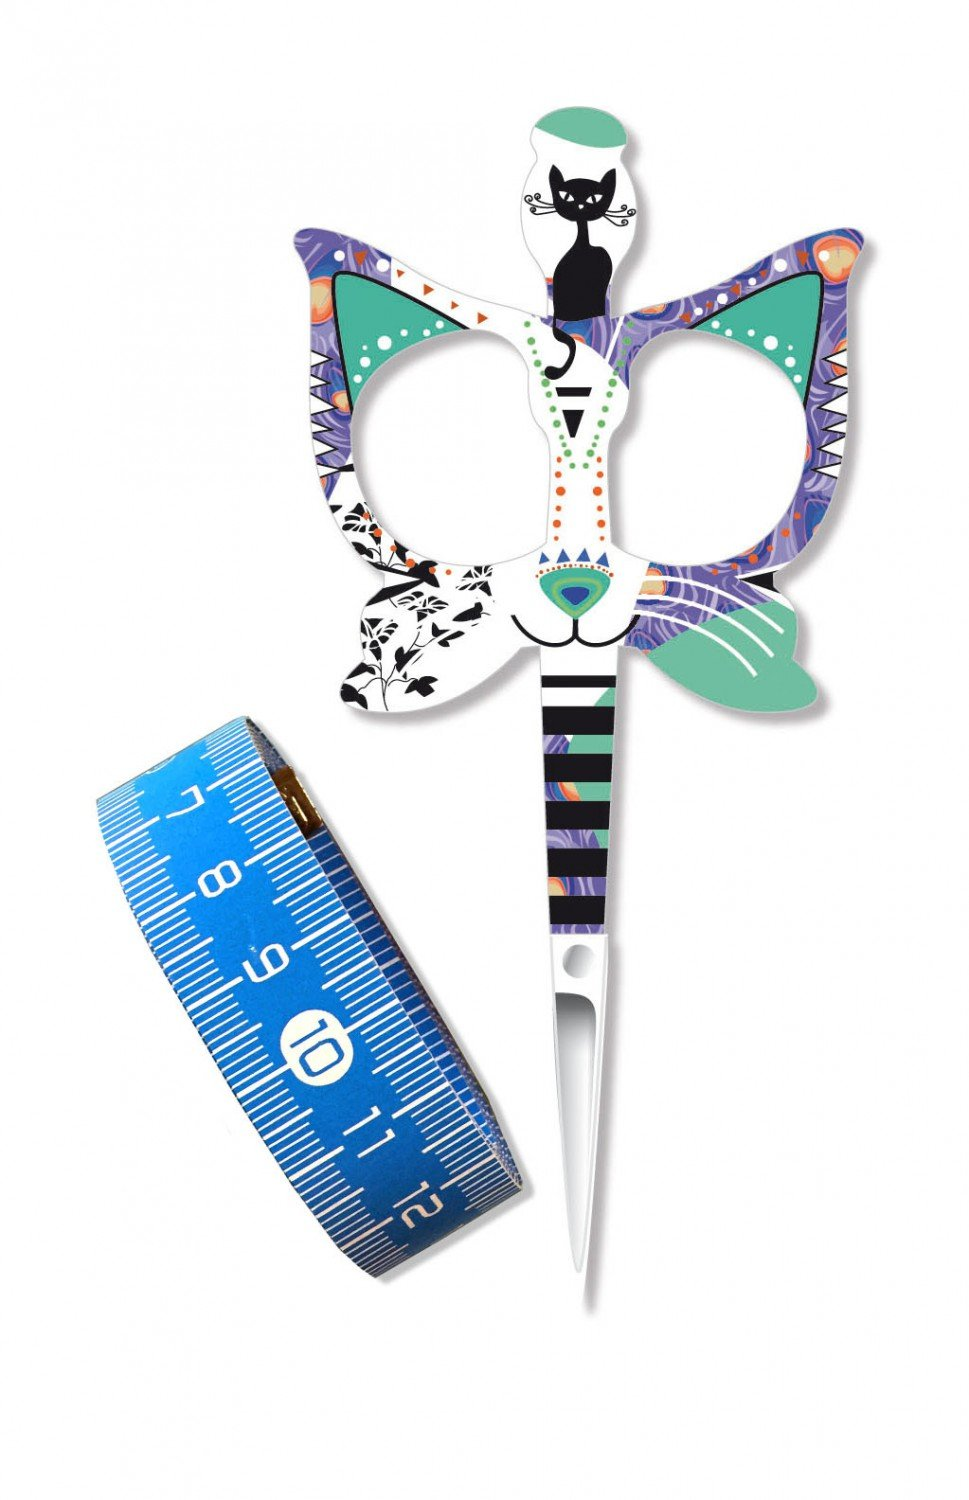 Blue Cat Scissor/Tape Measure - BH98570 - MAY BE RESTOCKED UPON REQUEST